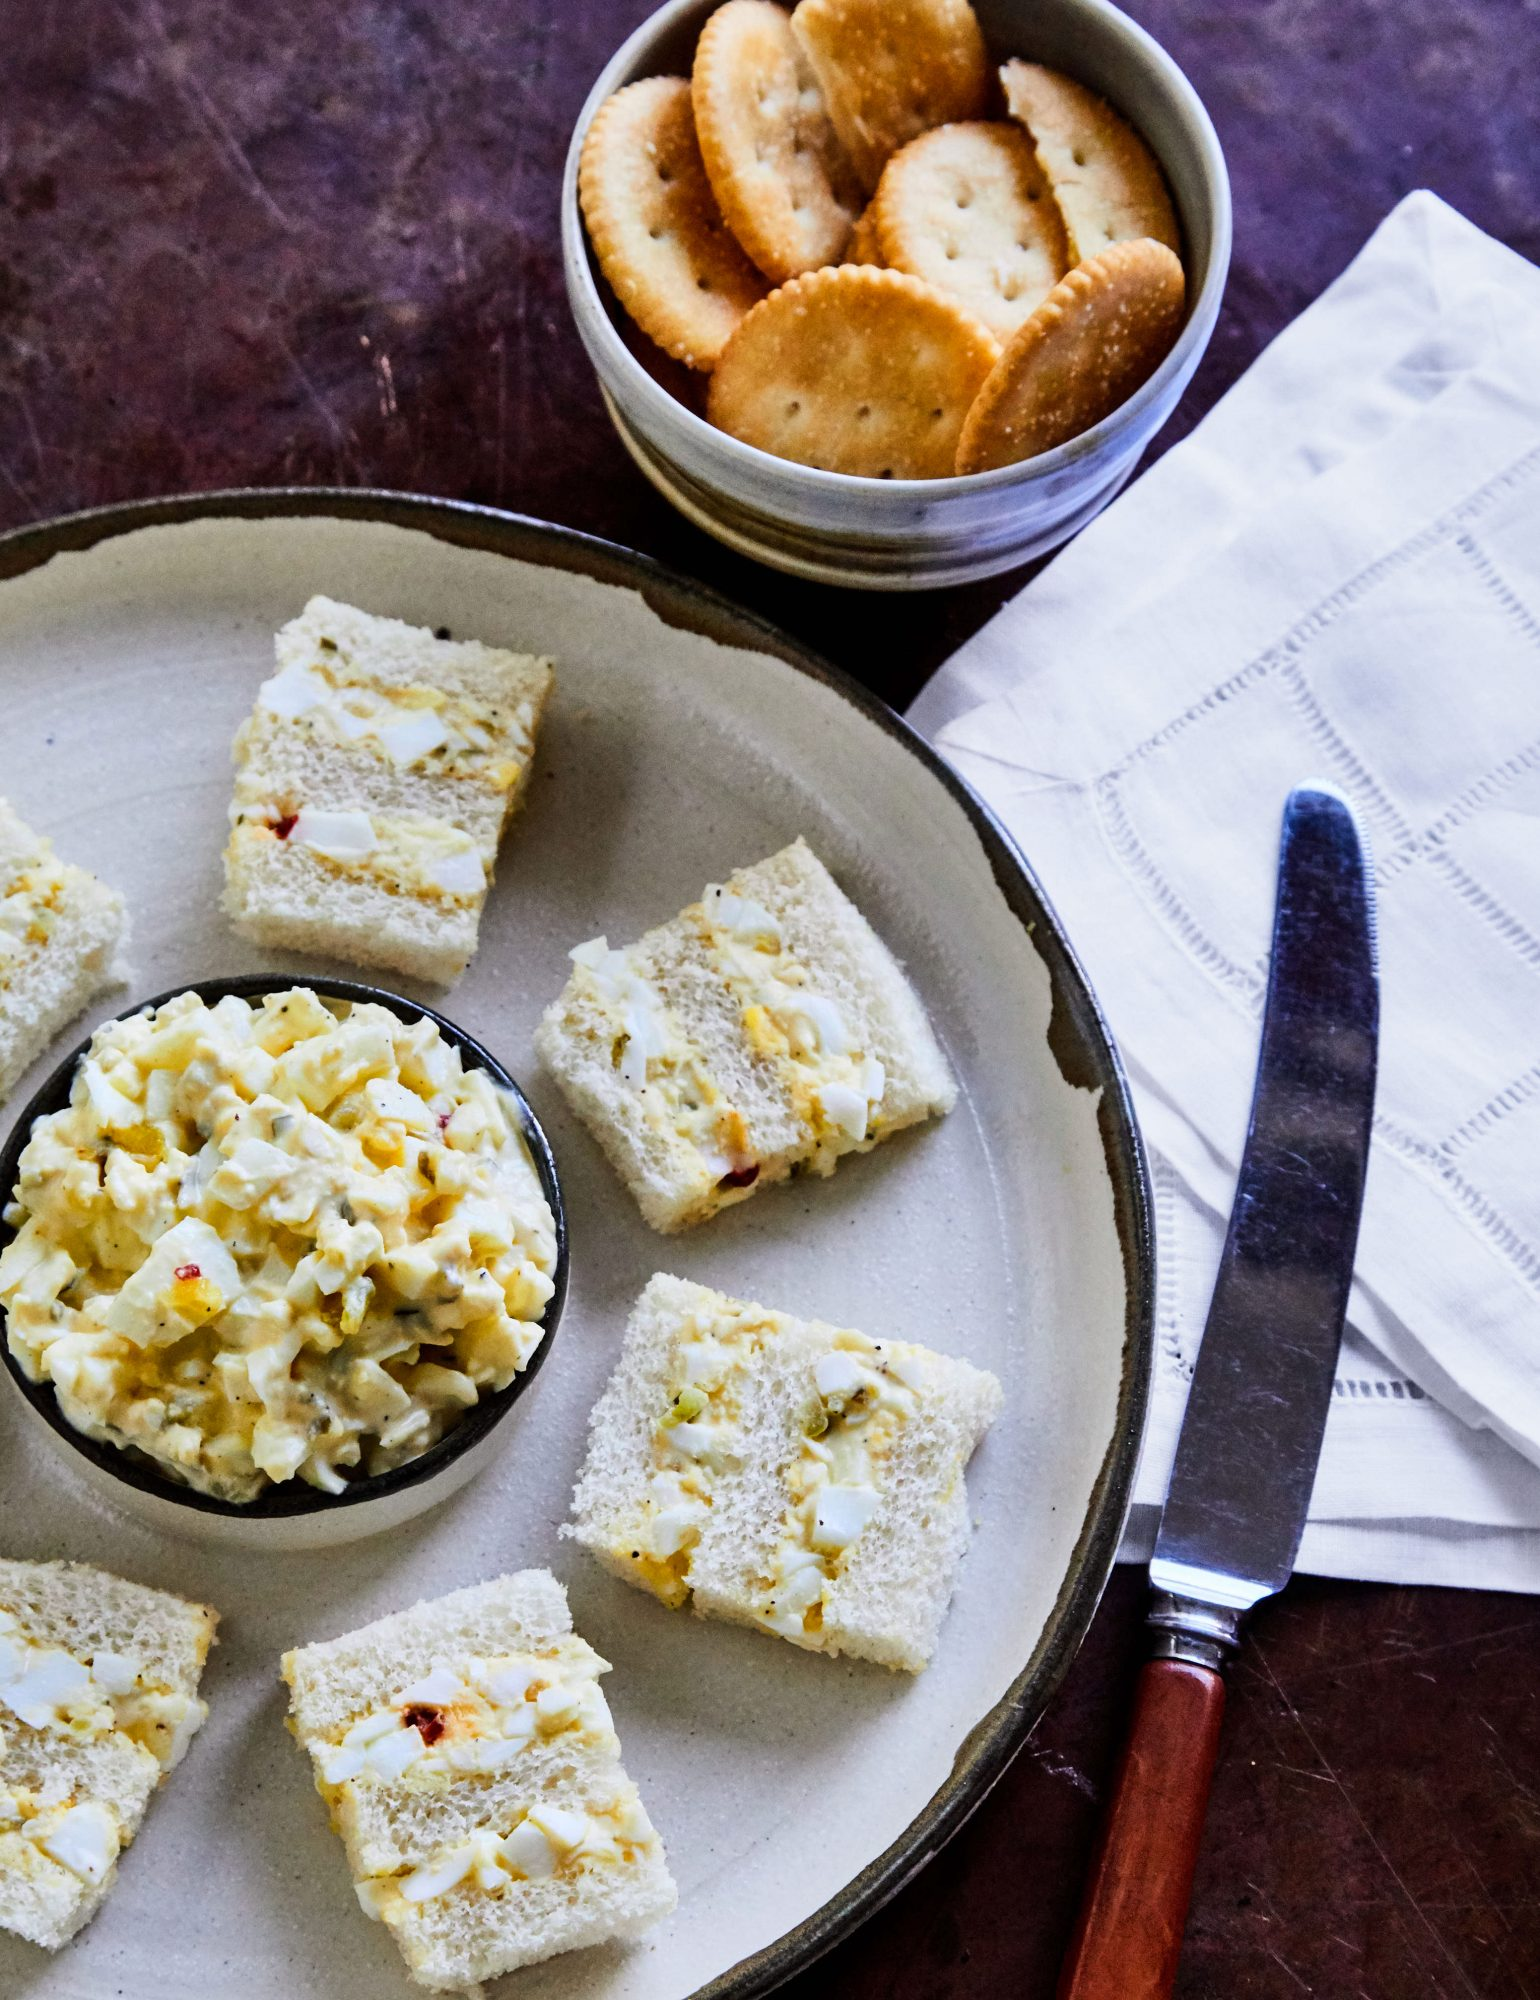 Egg salad finger sandwiches and option for dipping